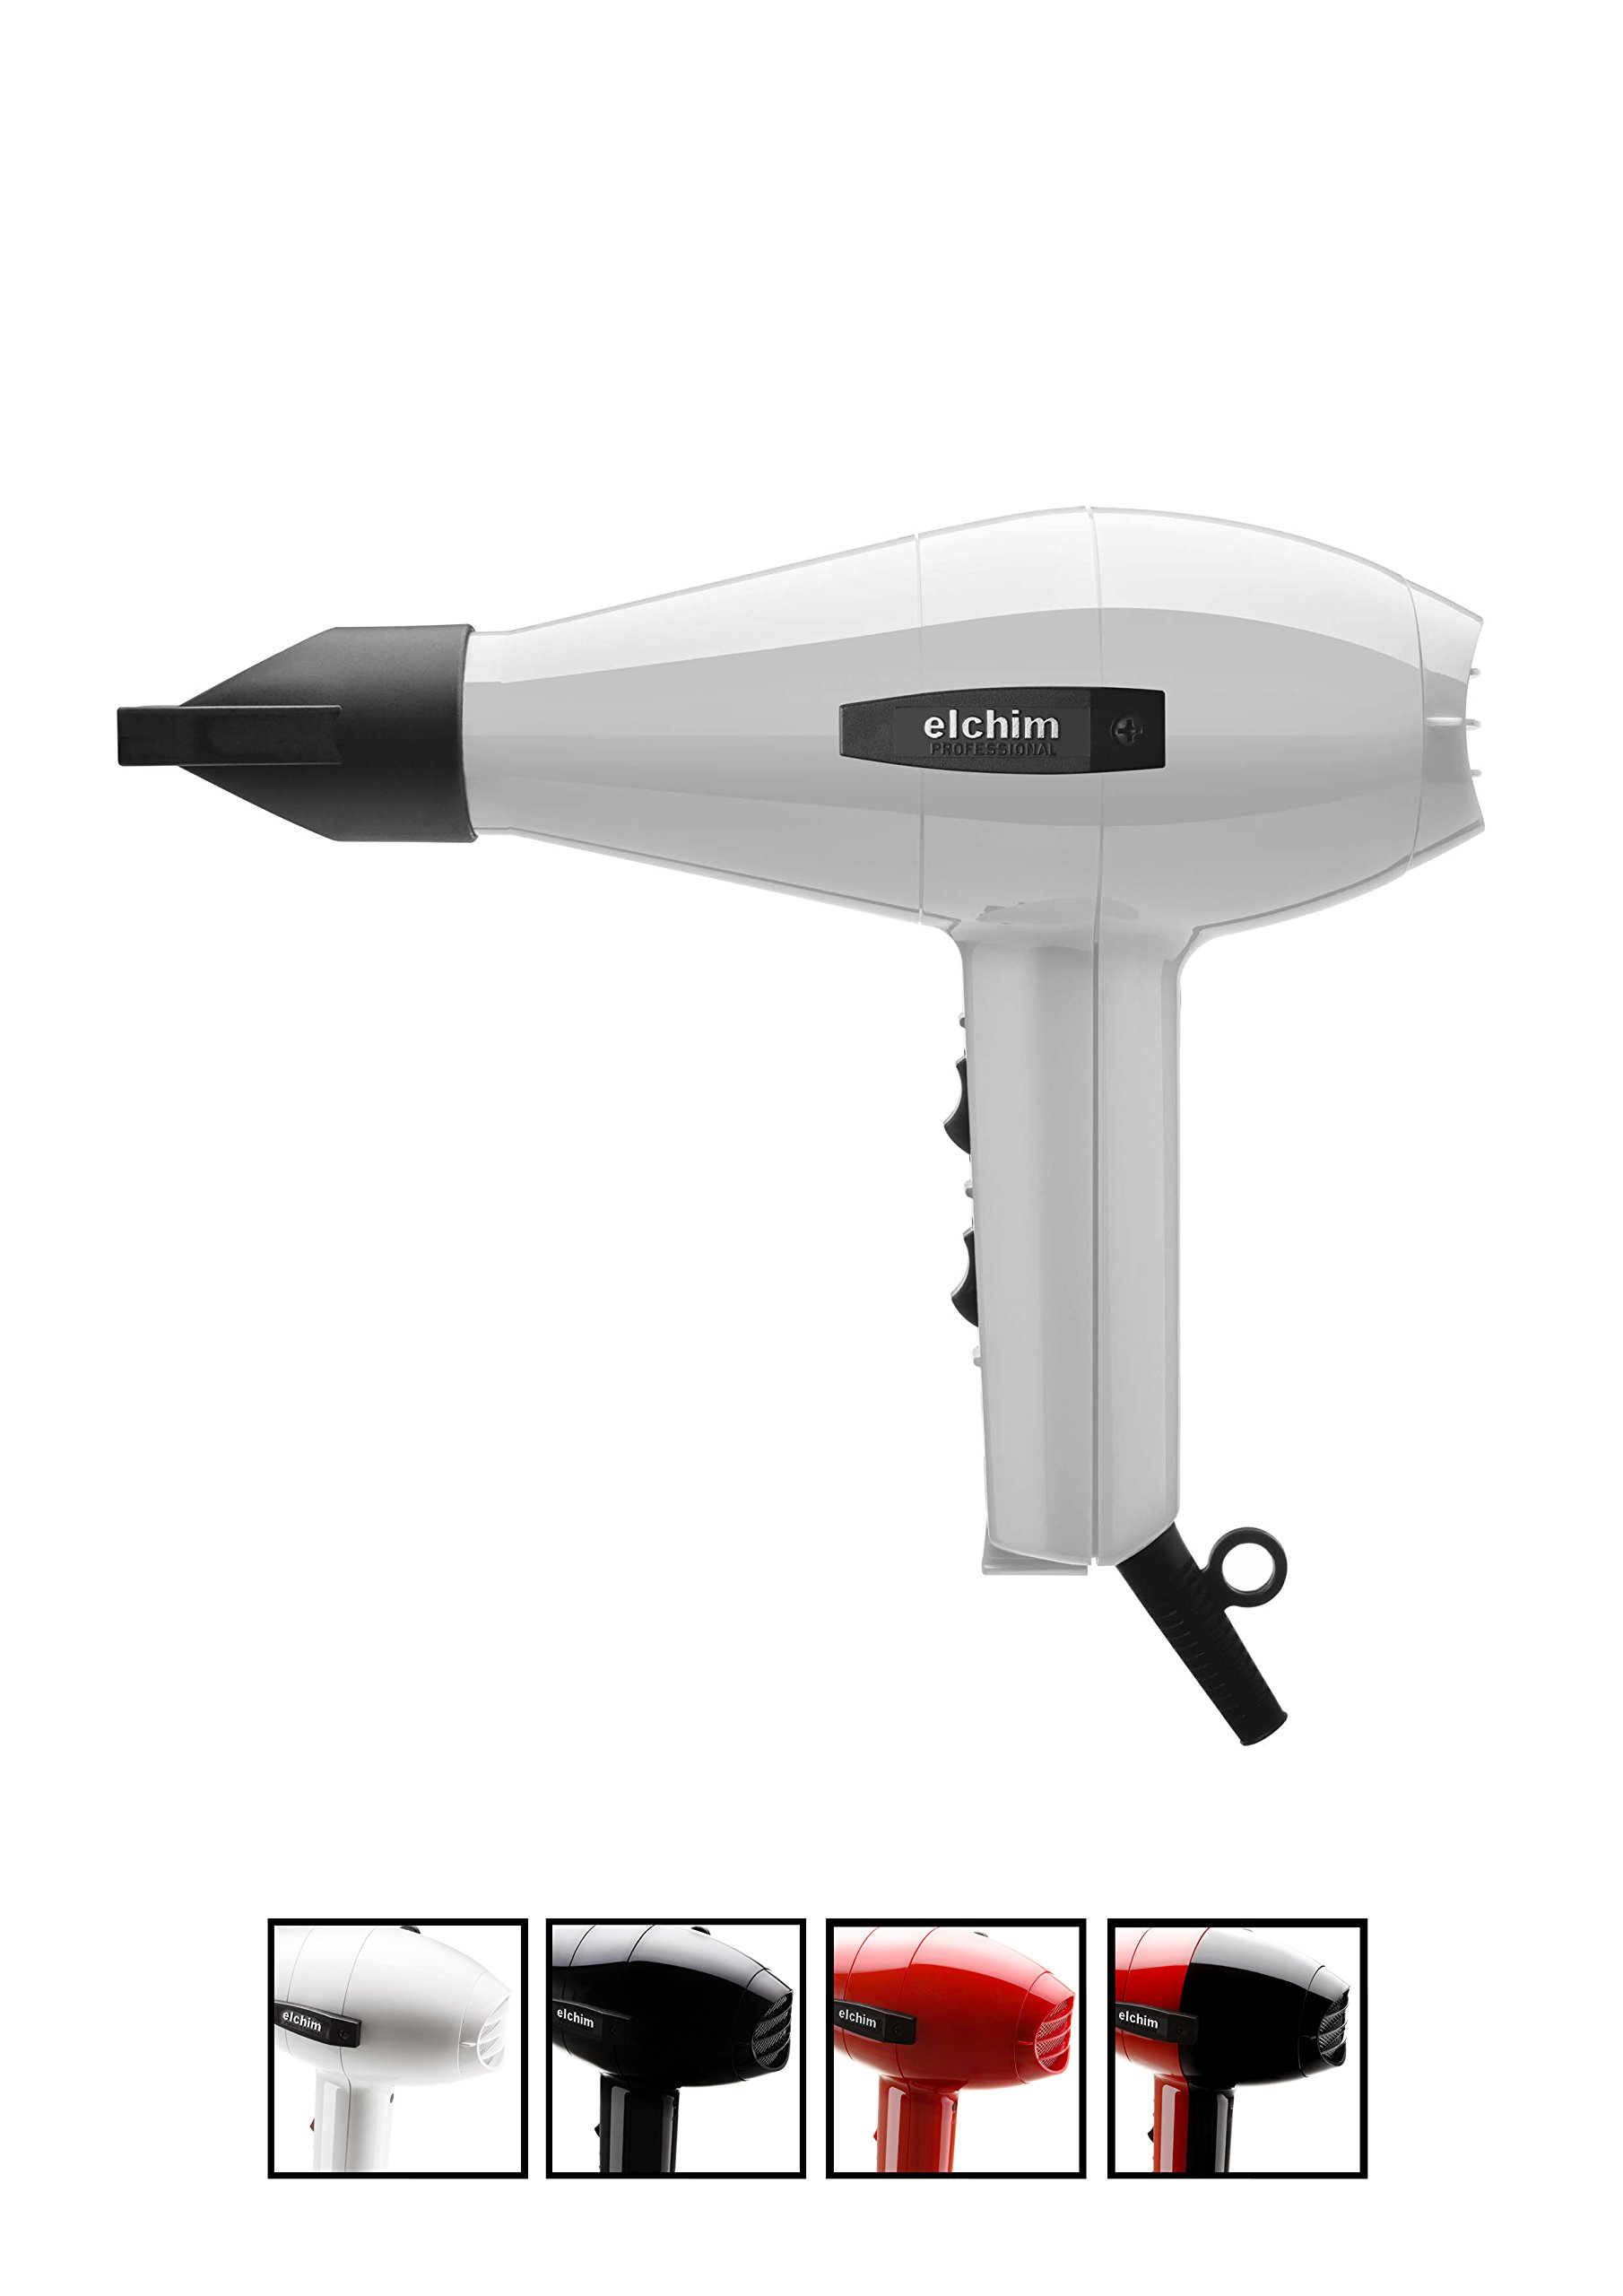 Elchim Classic 2001 Hair Dryer: Lightweight 1875 Watt Quick Dry Professional Salon Blow Dryer - 71cqewatP7L - Elchim Classic 2001 Hair Dryer, White